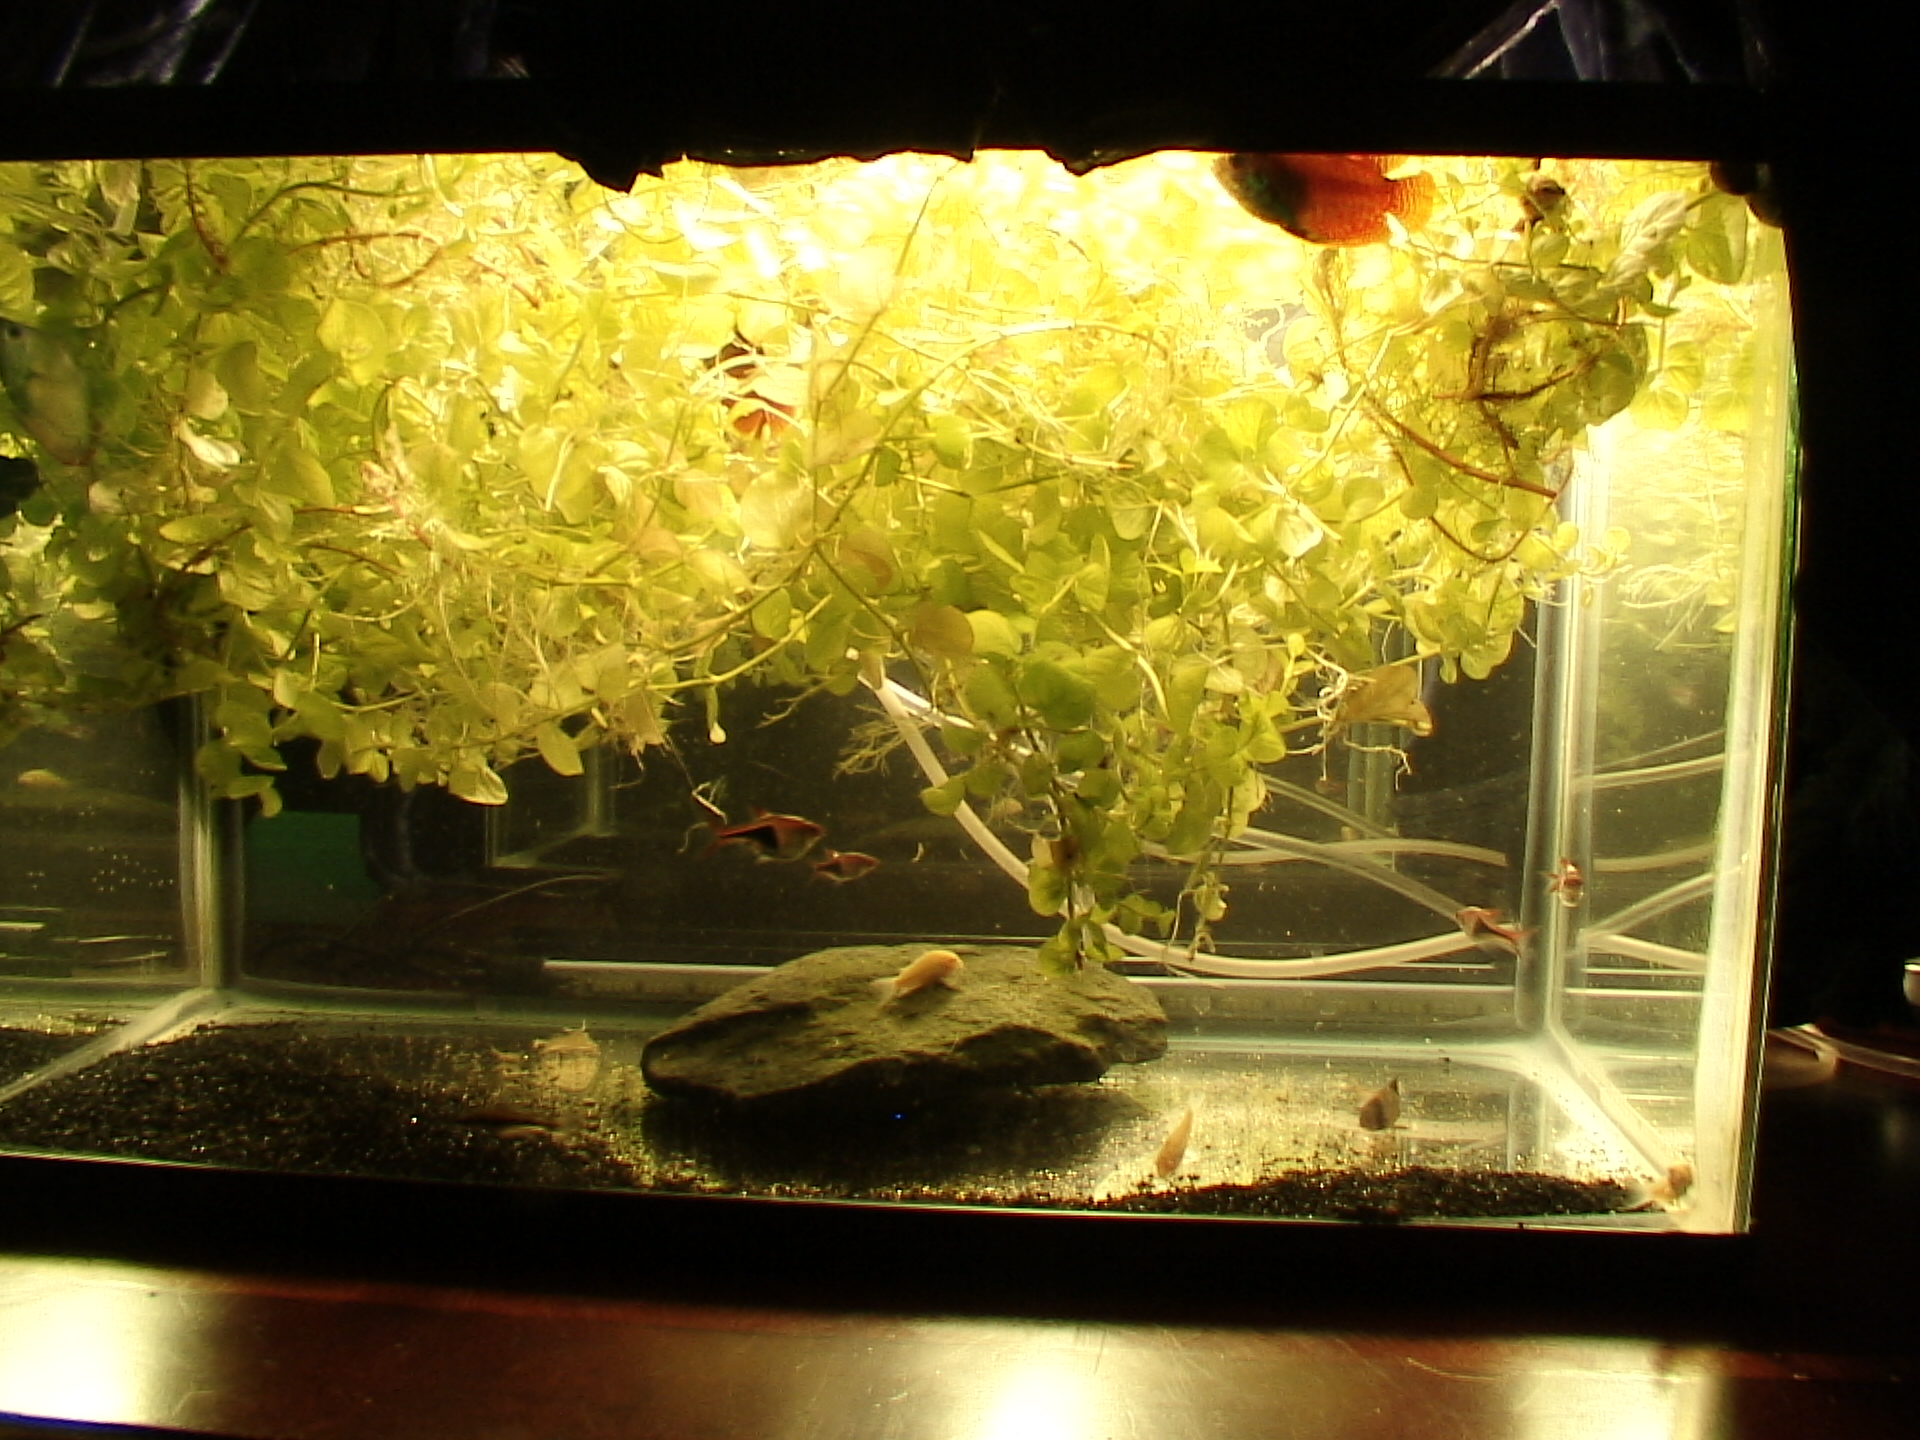 Freshwater fish no filter - 002 No Filters Little Substrate Plants